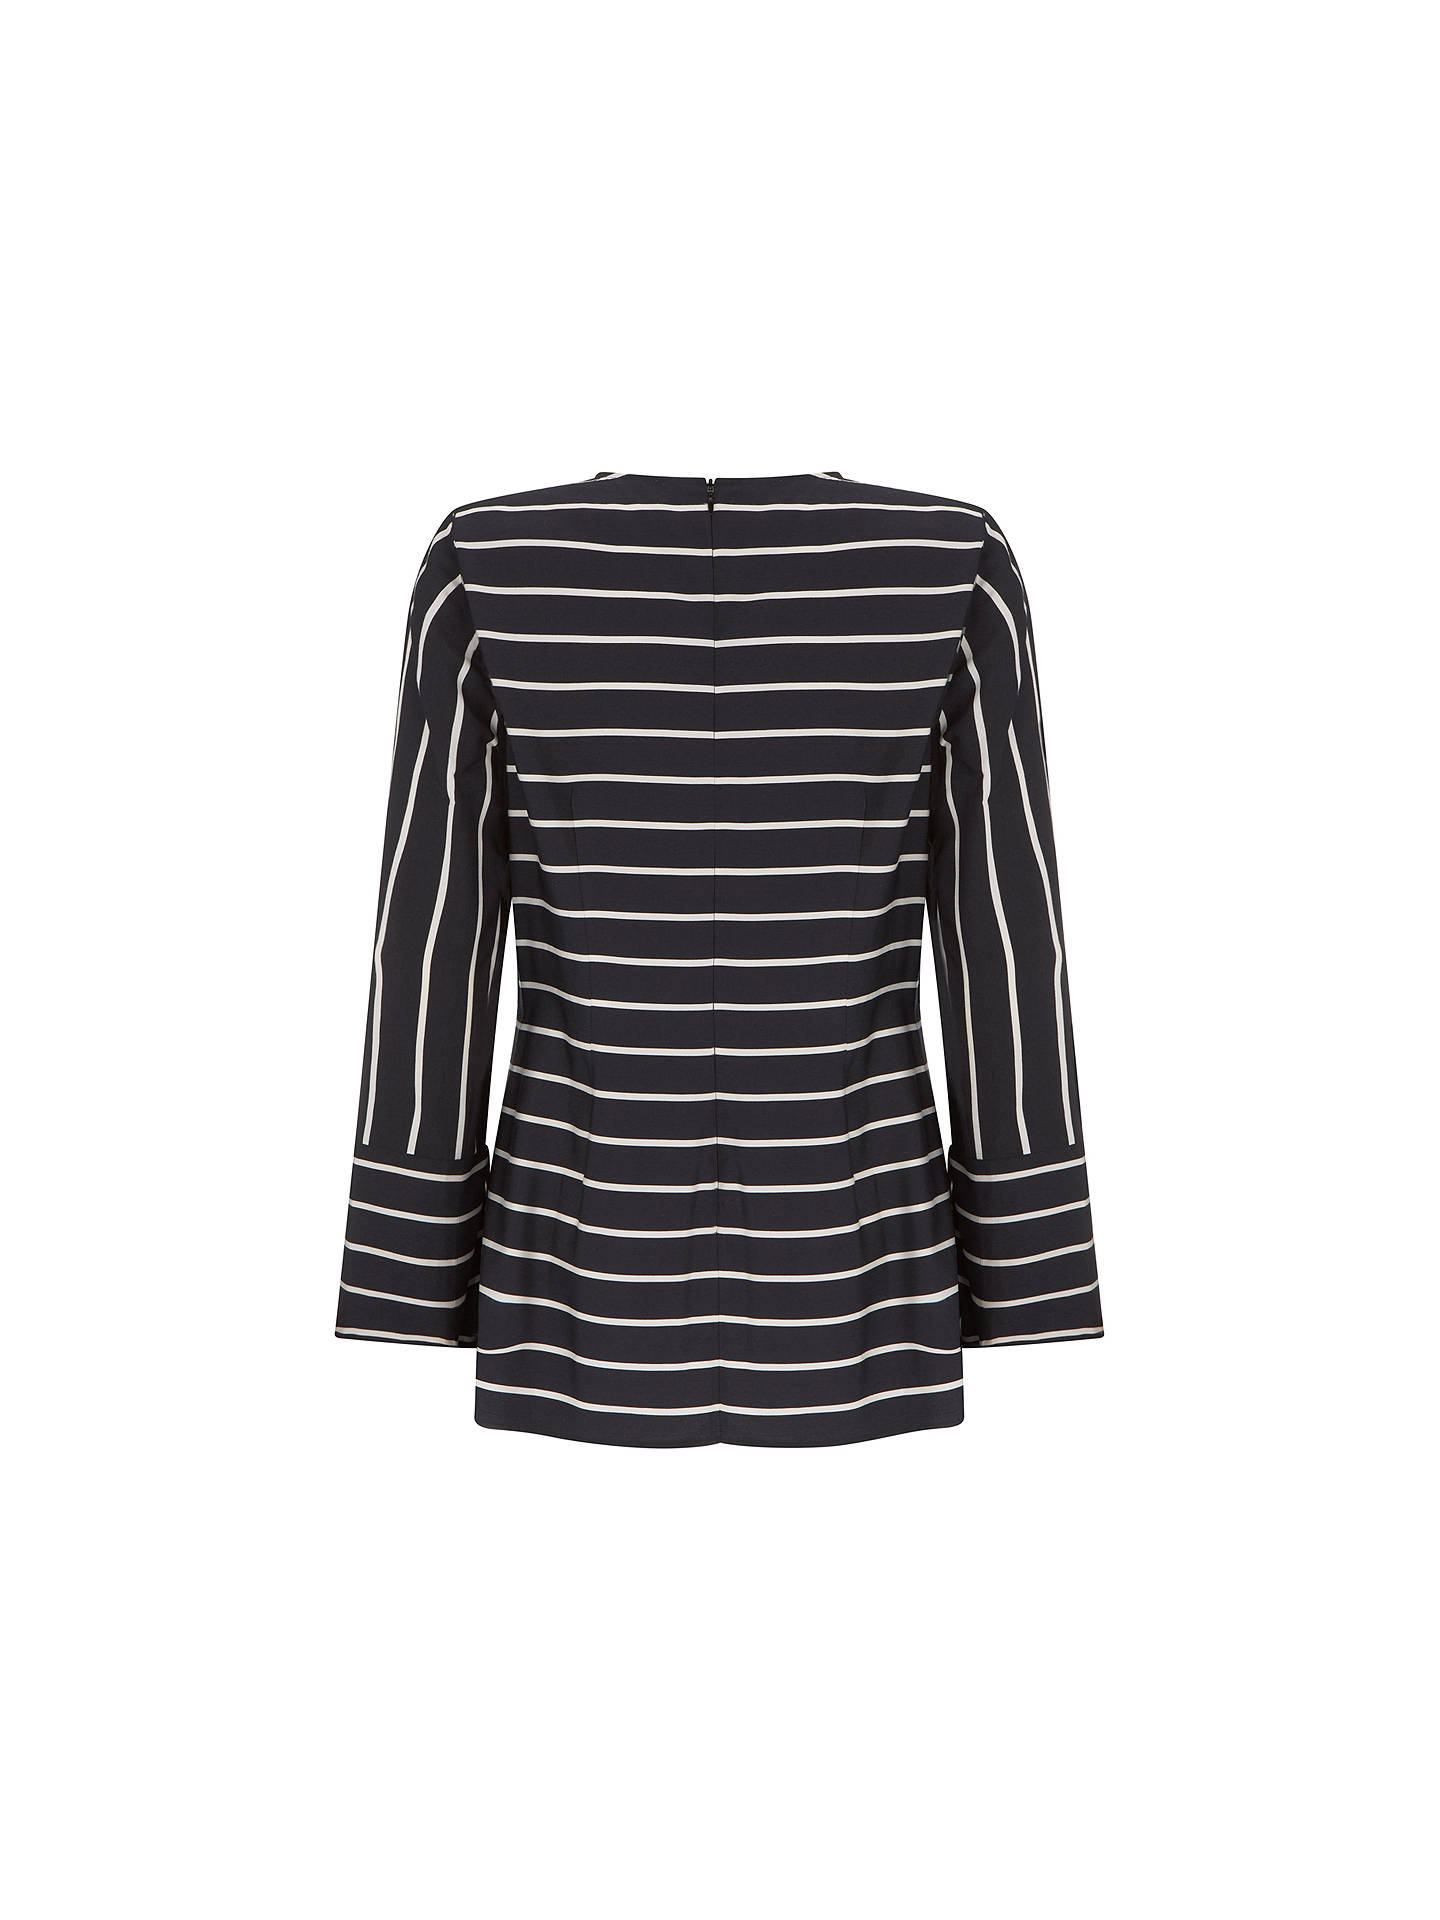 BuyMint Velvet Striped Knotted Top, Multi, 6 Online at johnlewis.com